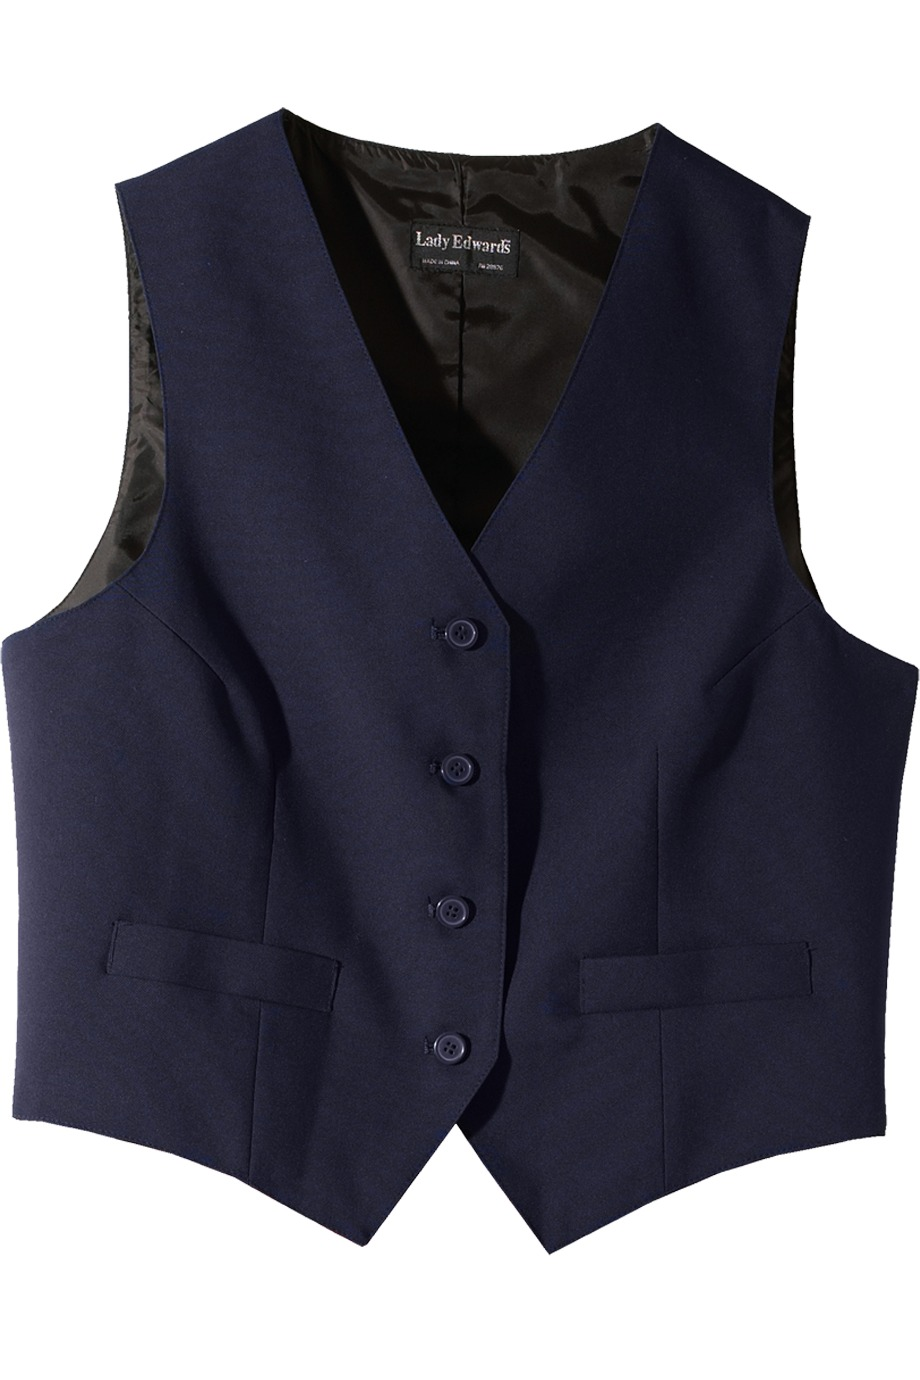 Edwards Garment 7490 - Women's Economy Vest